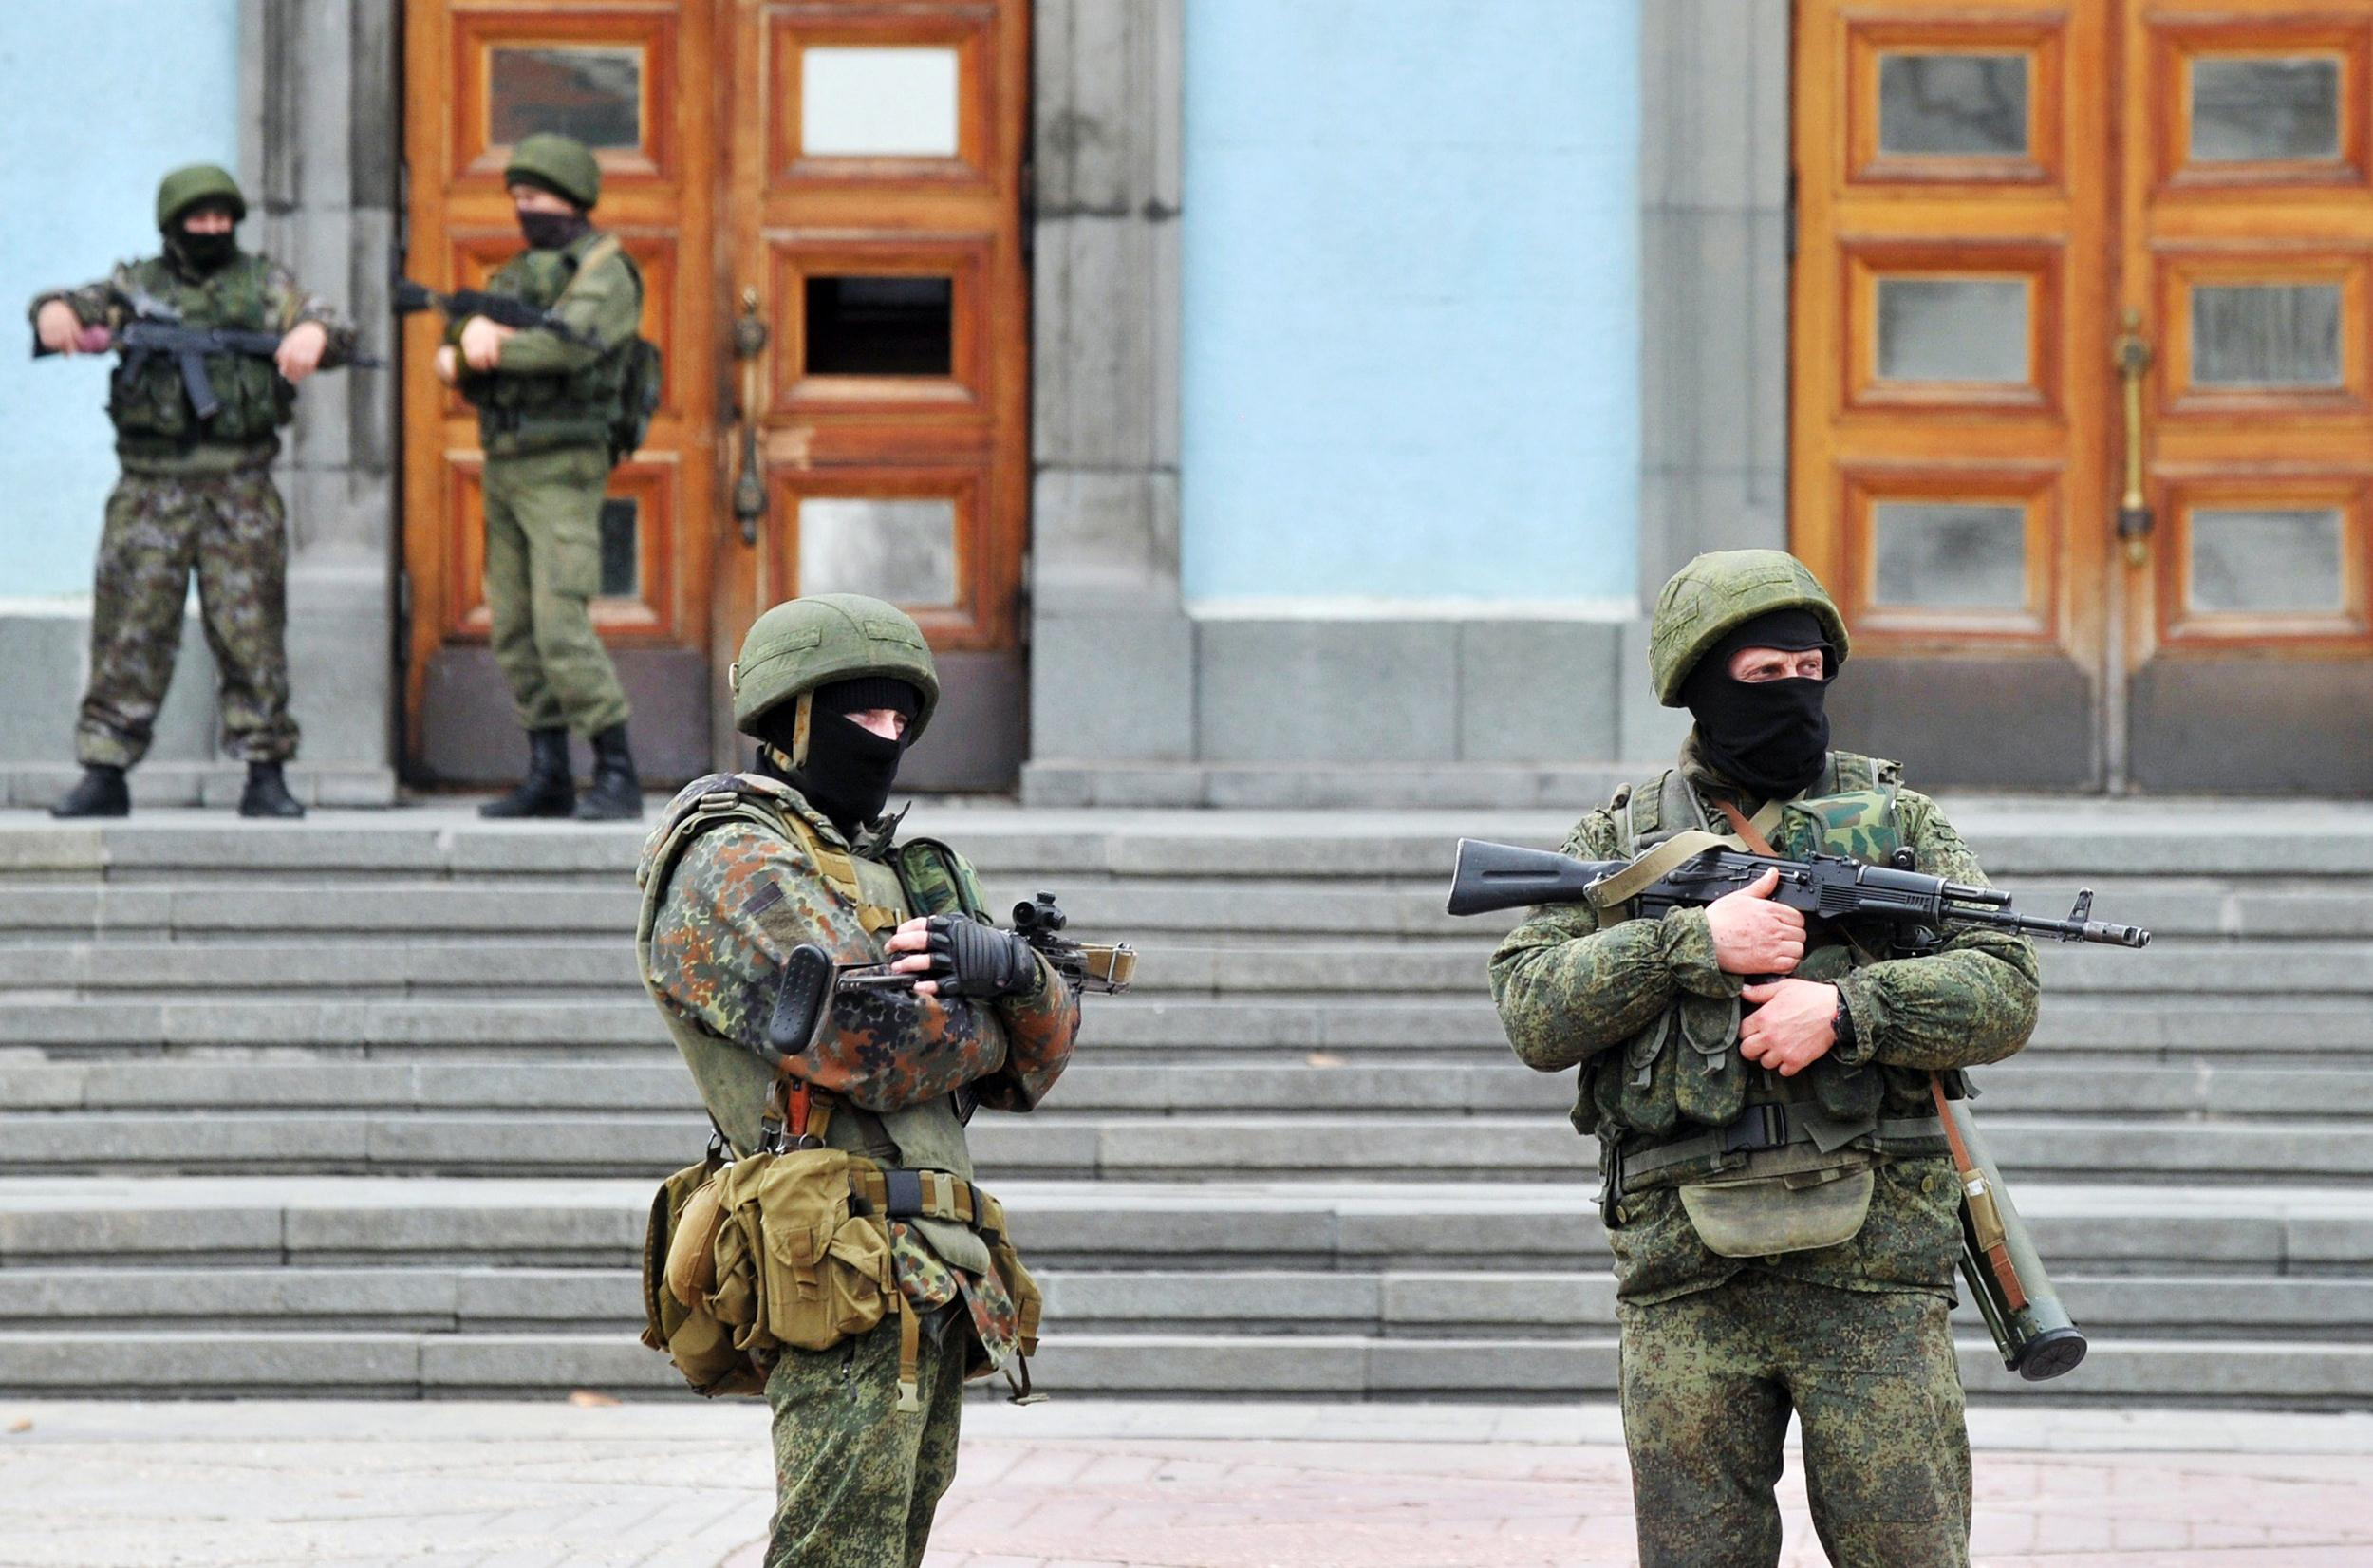 Image: Unidentified armed and uniformed men guard the Crimean Cabinet of Ministers building in Simferopol